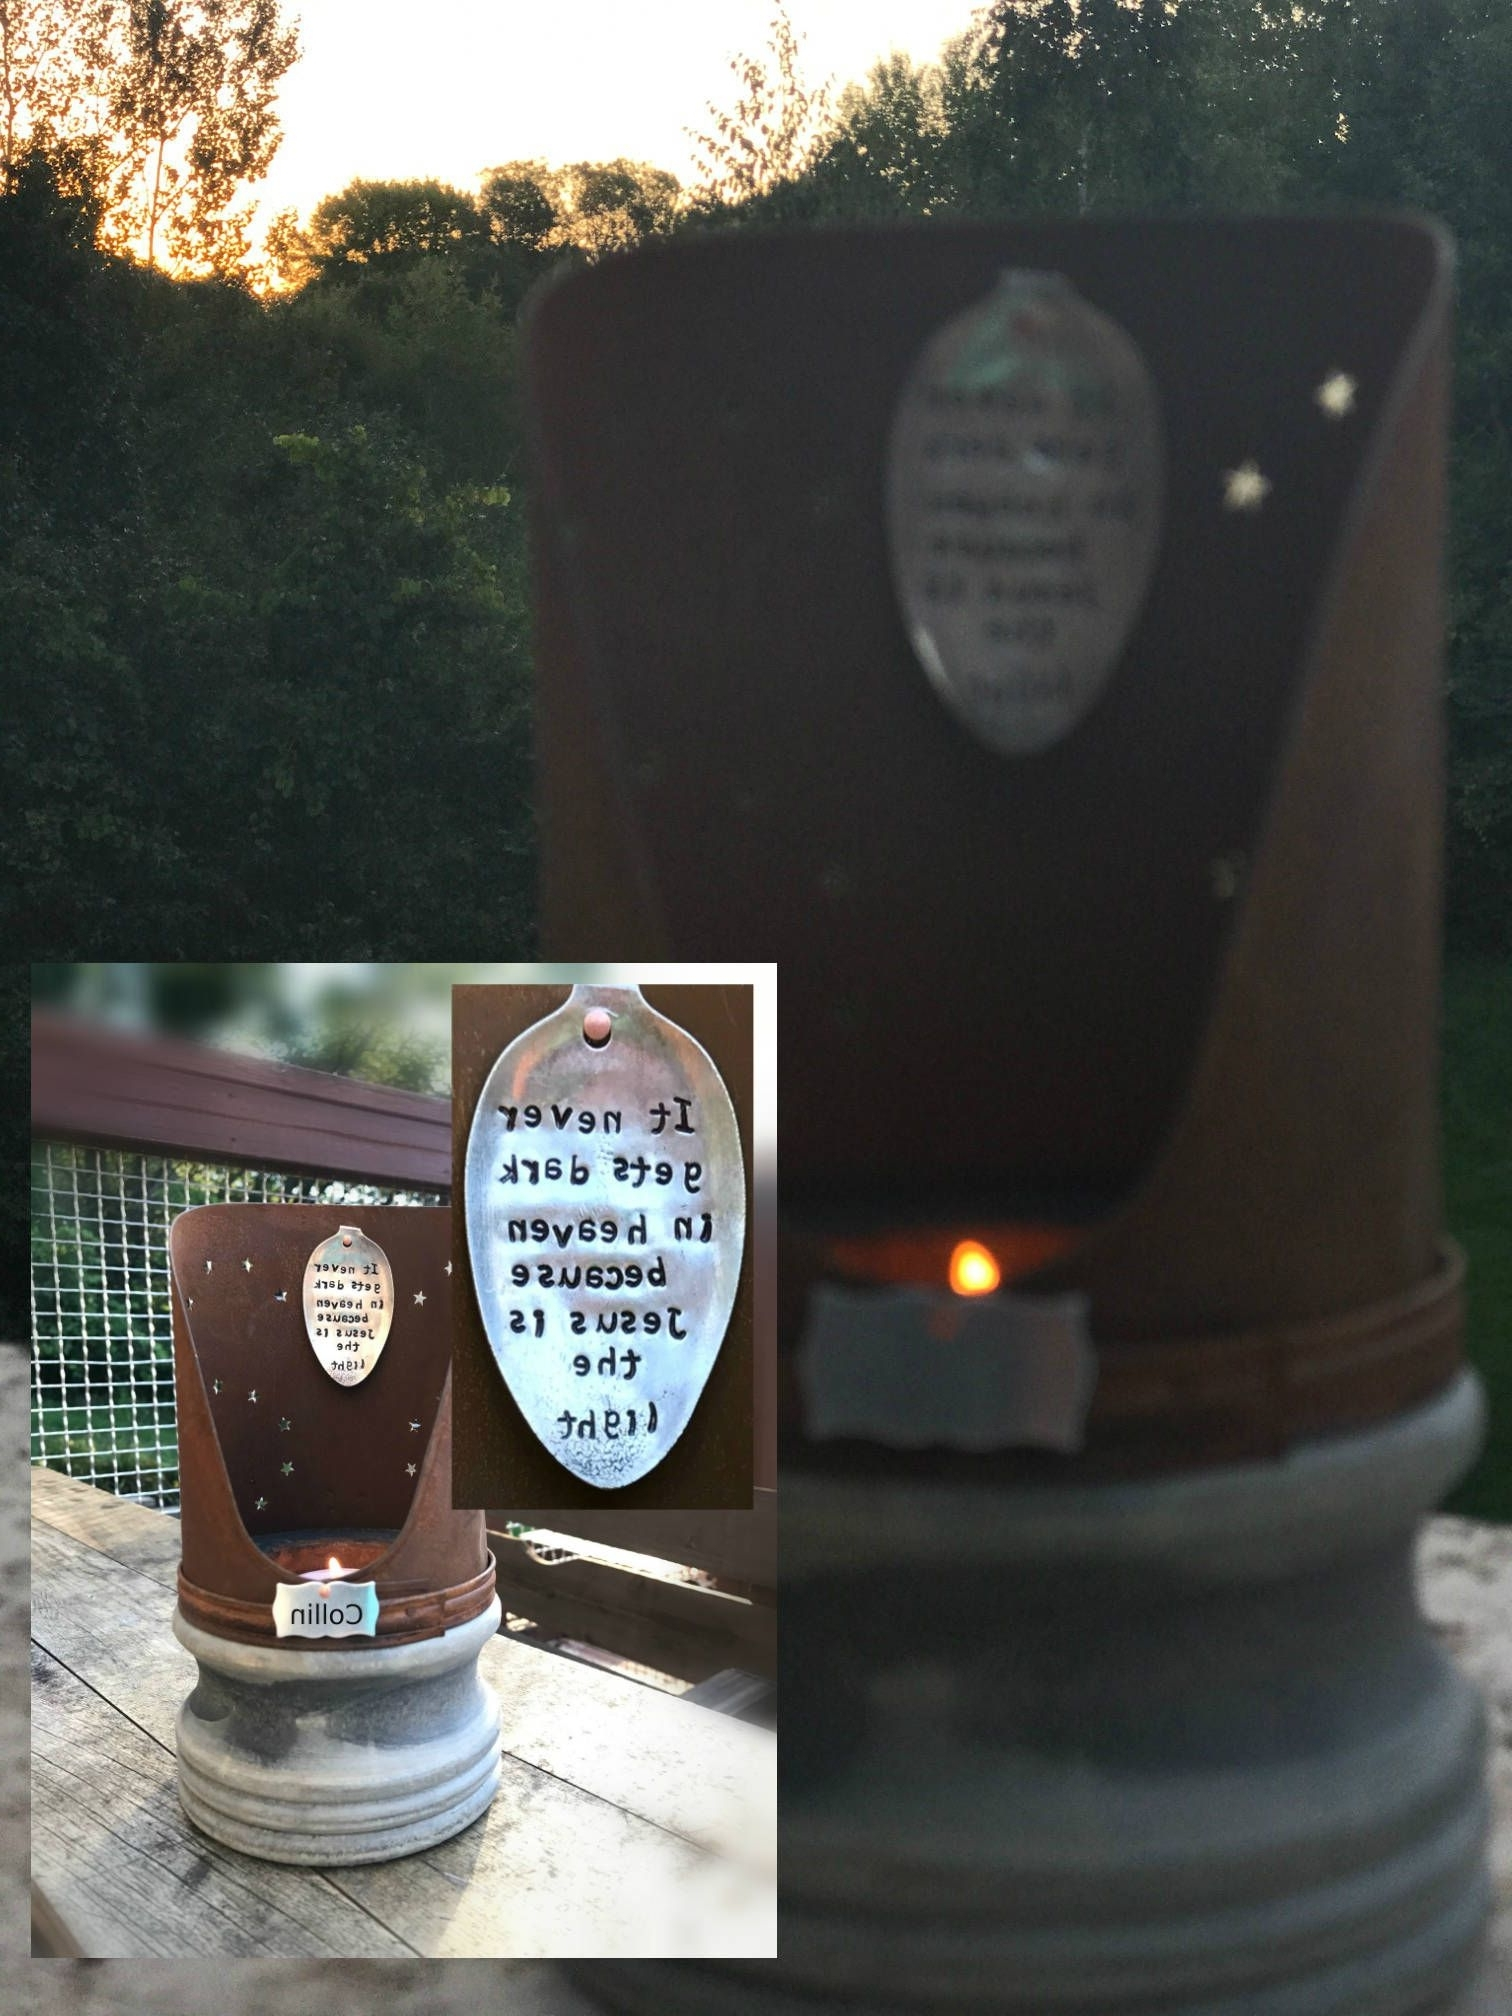 Favorite Memorial Lantern Vintage Inspired Eternal Light Candle Gift Indoor With Regard To Outdoor Memorial Lanterns (View 20 of 20)